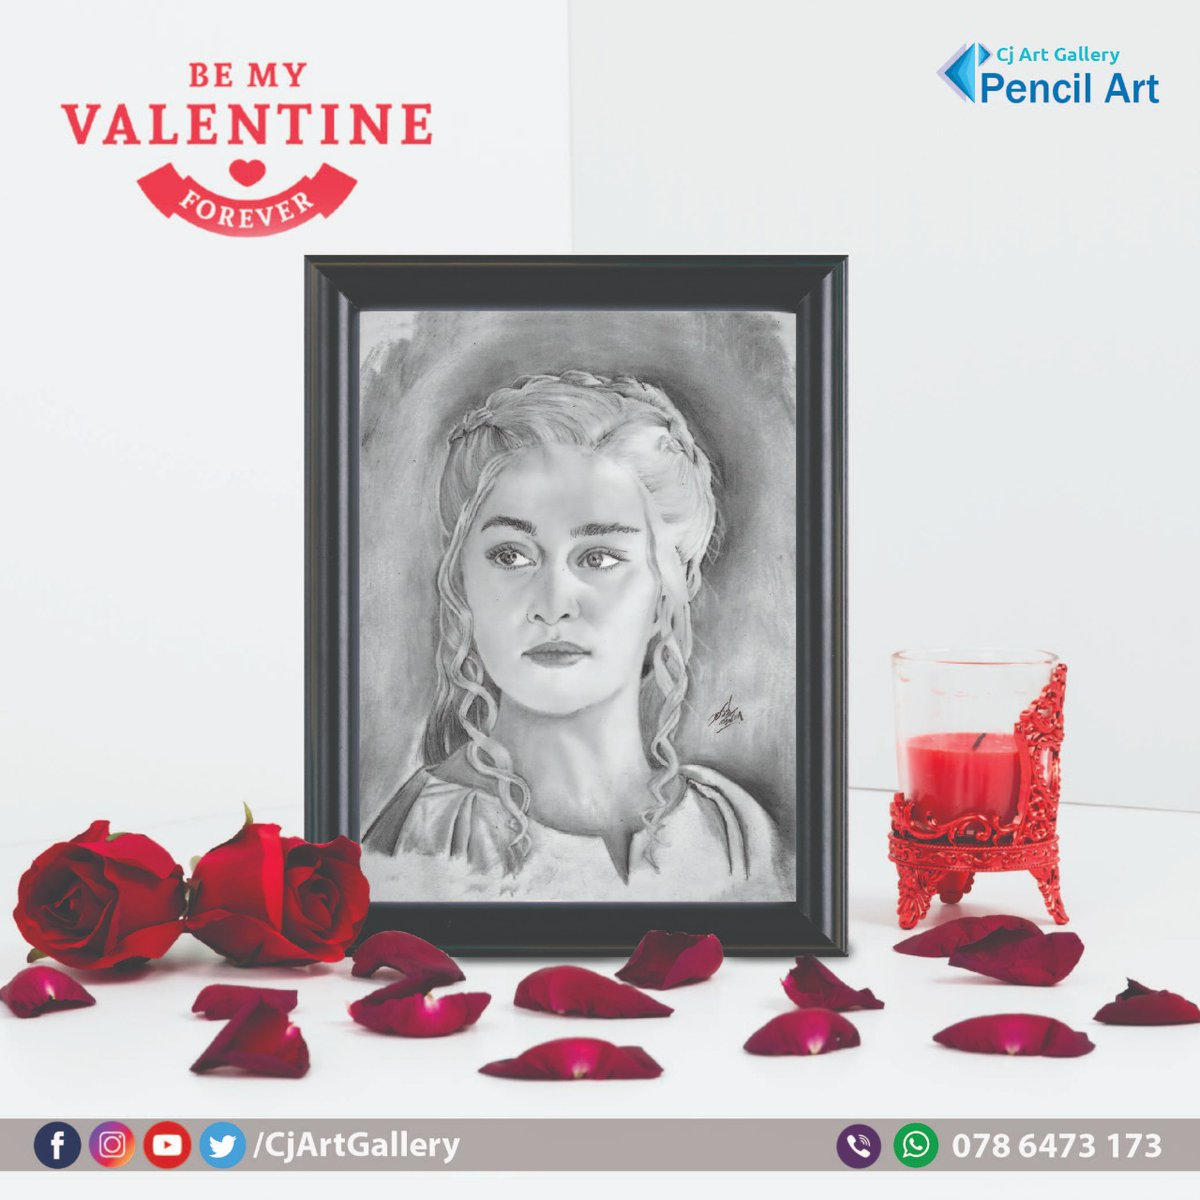 We offer high quality & realistic hand drawing pencil portraits as a memorable souvenir to gift your loved ones for Valentine day. Contact: 0786 473 173 (Whatsapp/Viber) Visit @CjArtGallerypic.twitter.com/qBVDADEbAx – at Pita Kotte